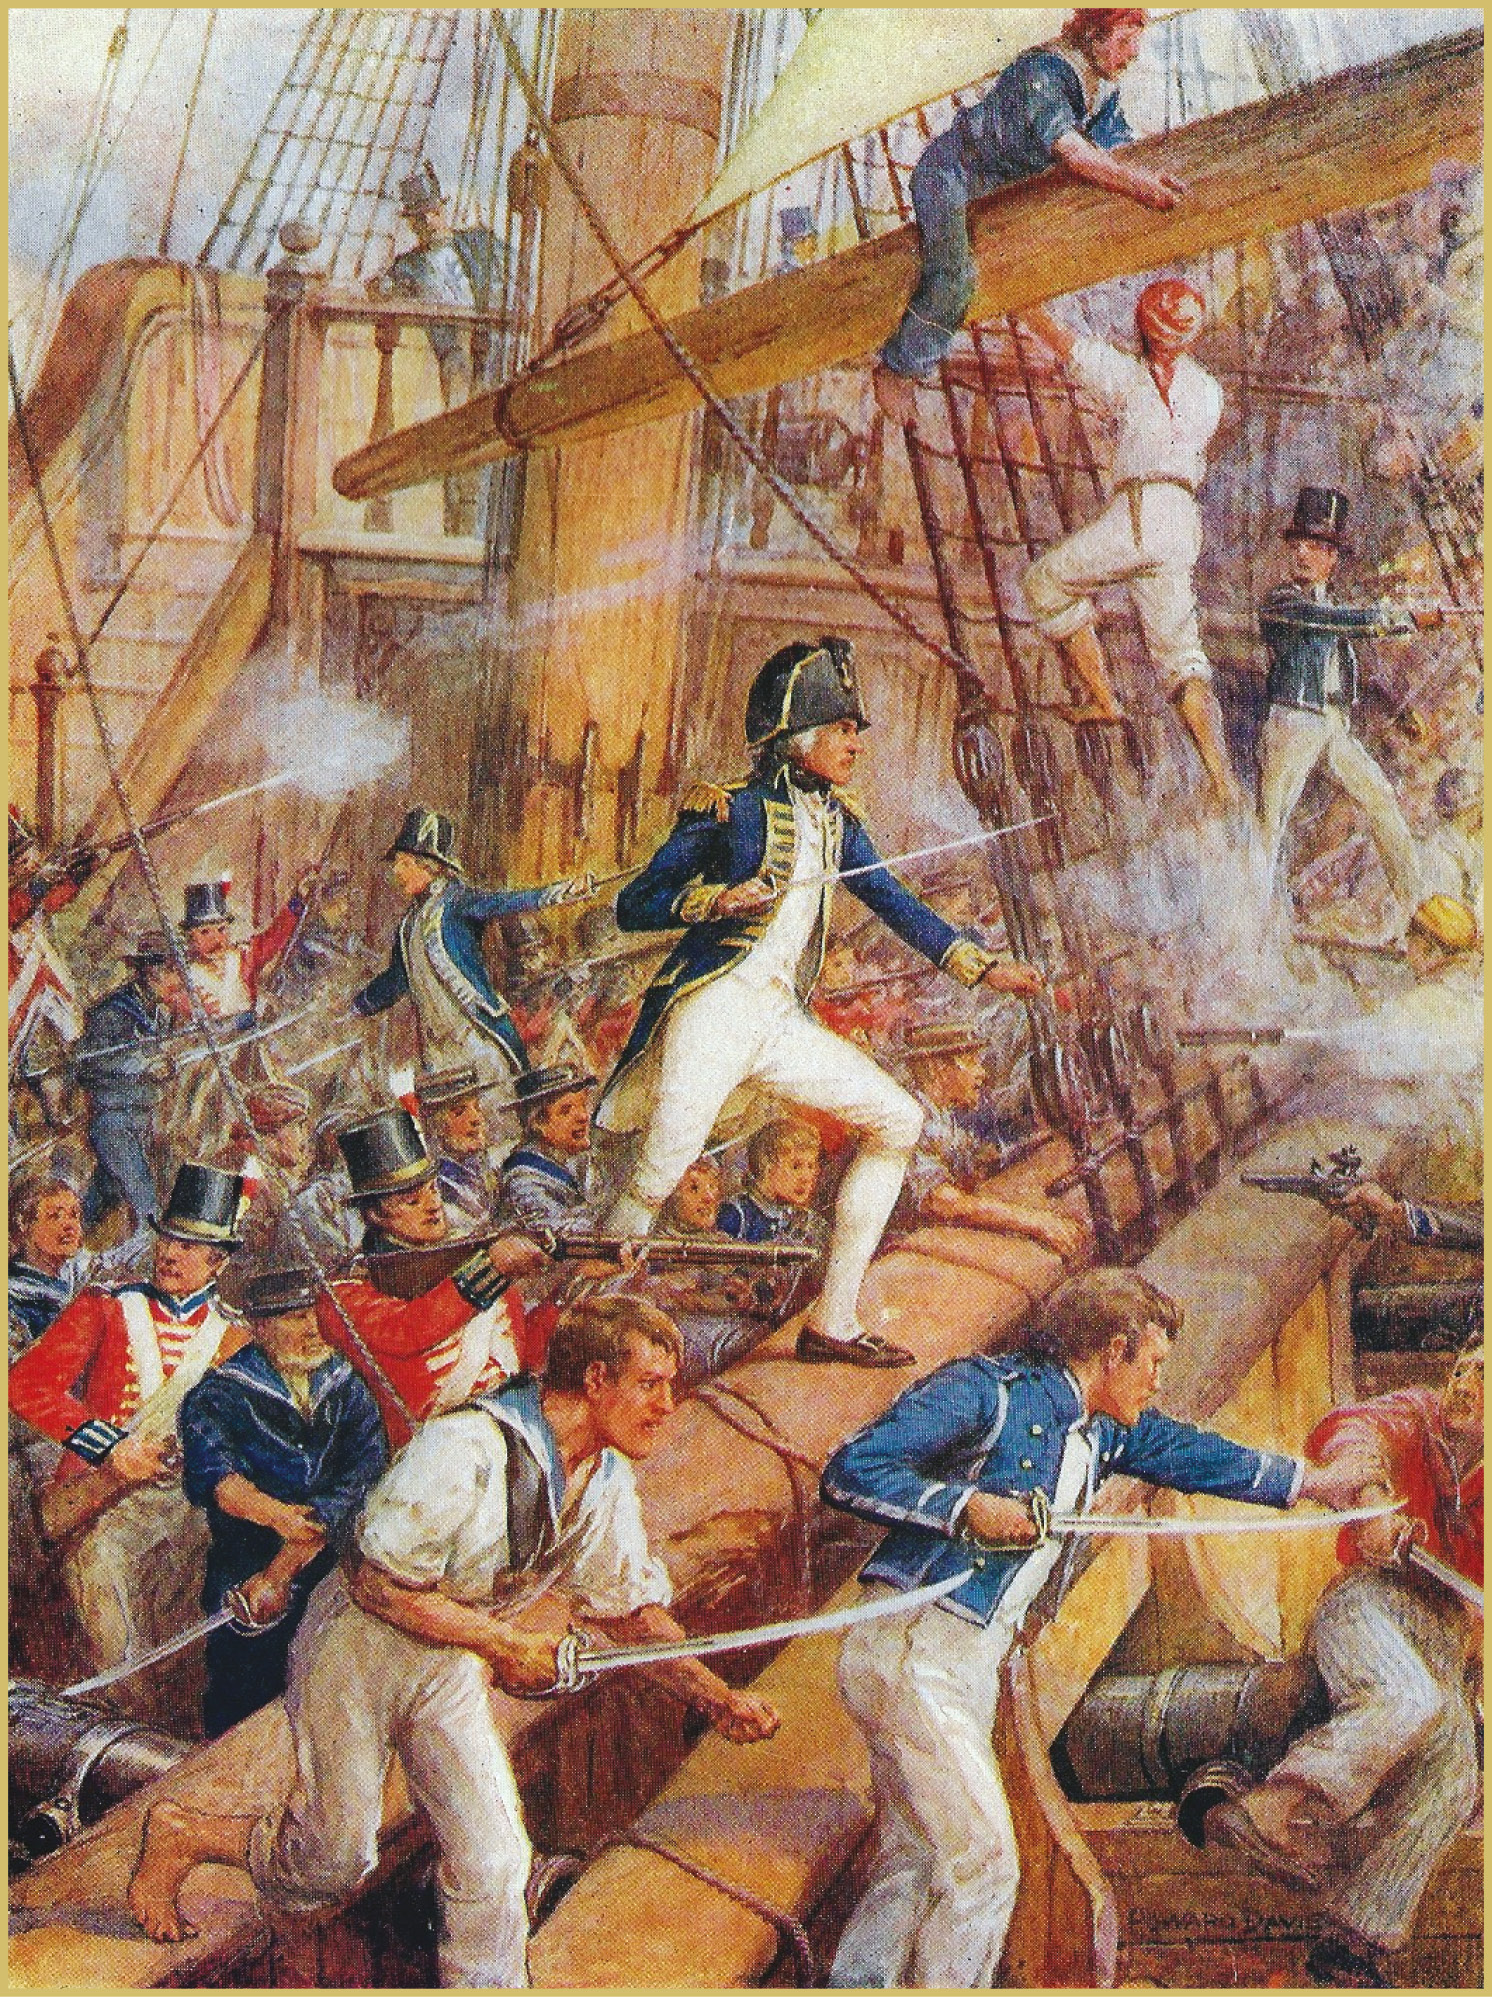 LEFT Nelson leads a boarding party as it storms the San Nicolas at the Battle of Cape St Vincent. Personal example and unstinting concern for the welfare of his men were hallmarks of his leadership.